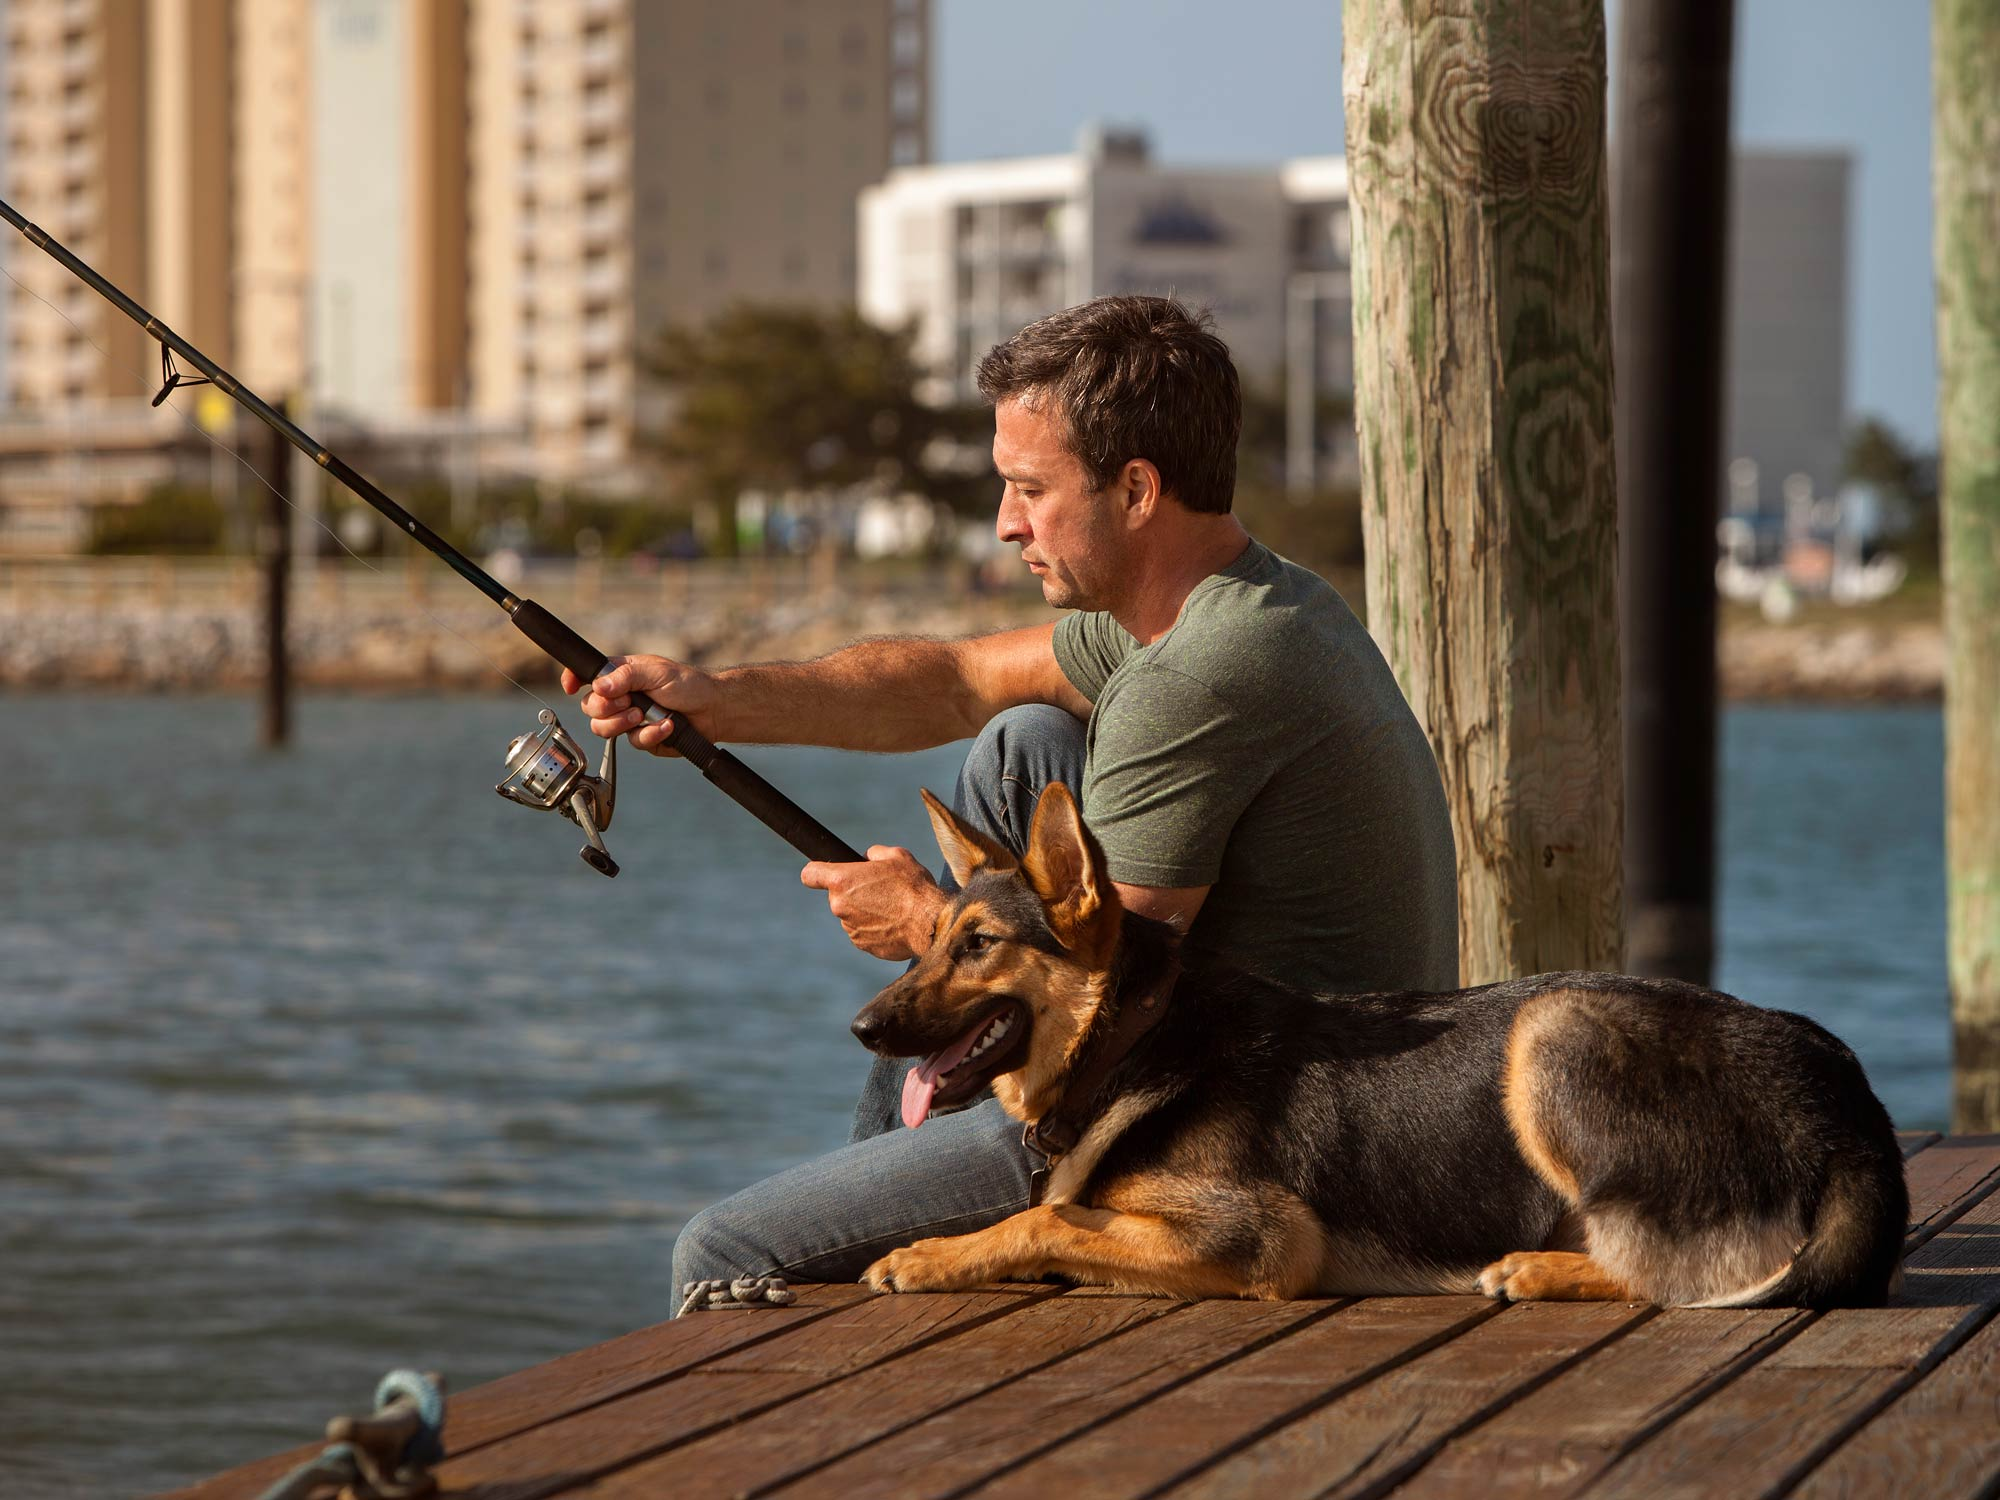 Angler fishing from a dock with his dog next to him